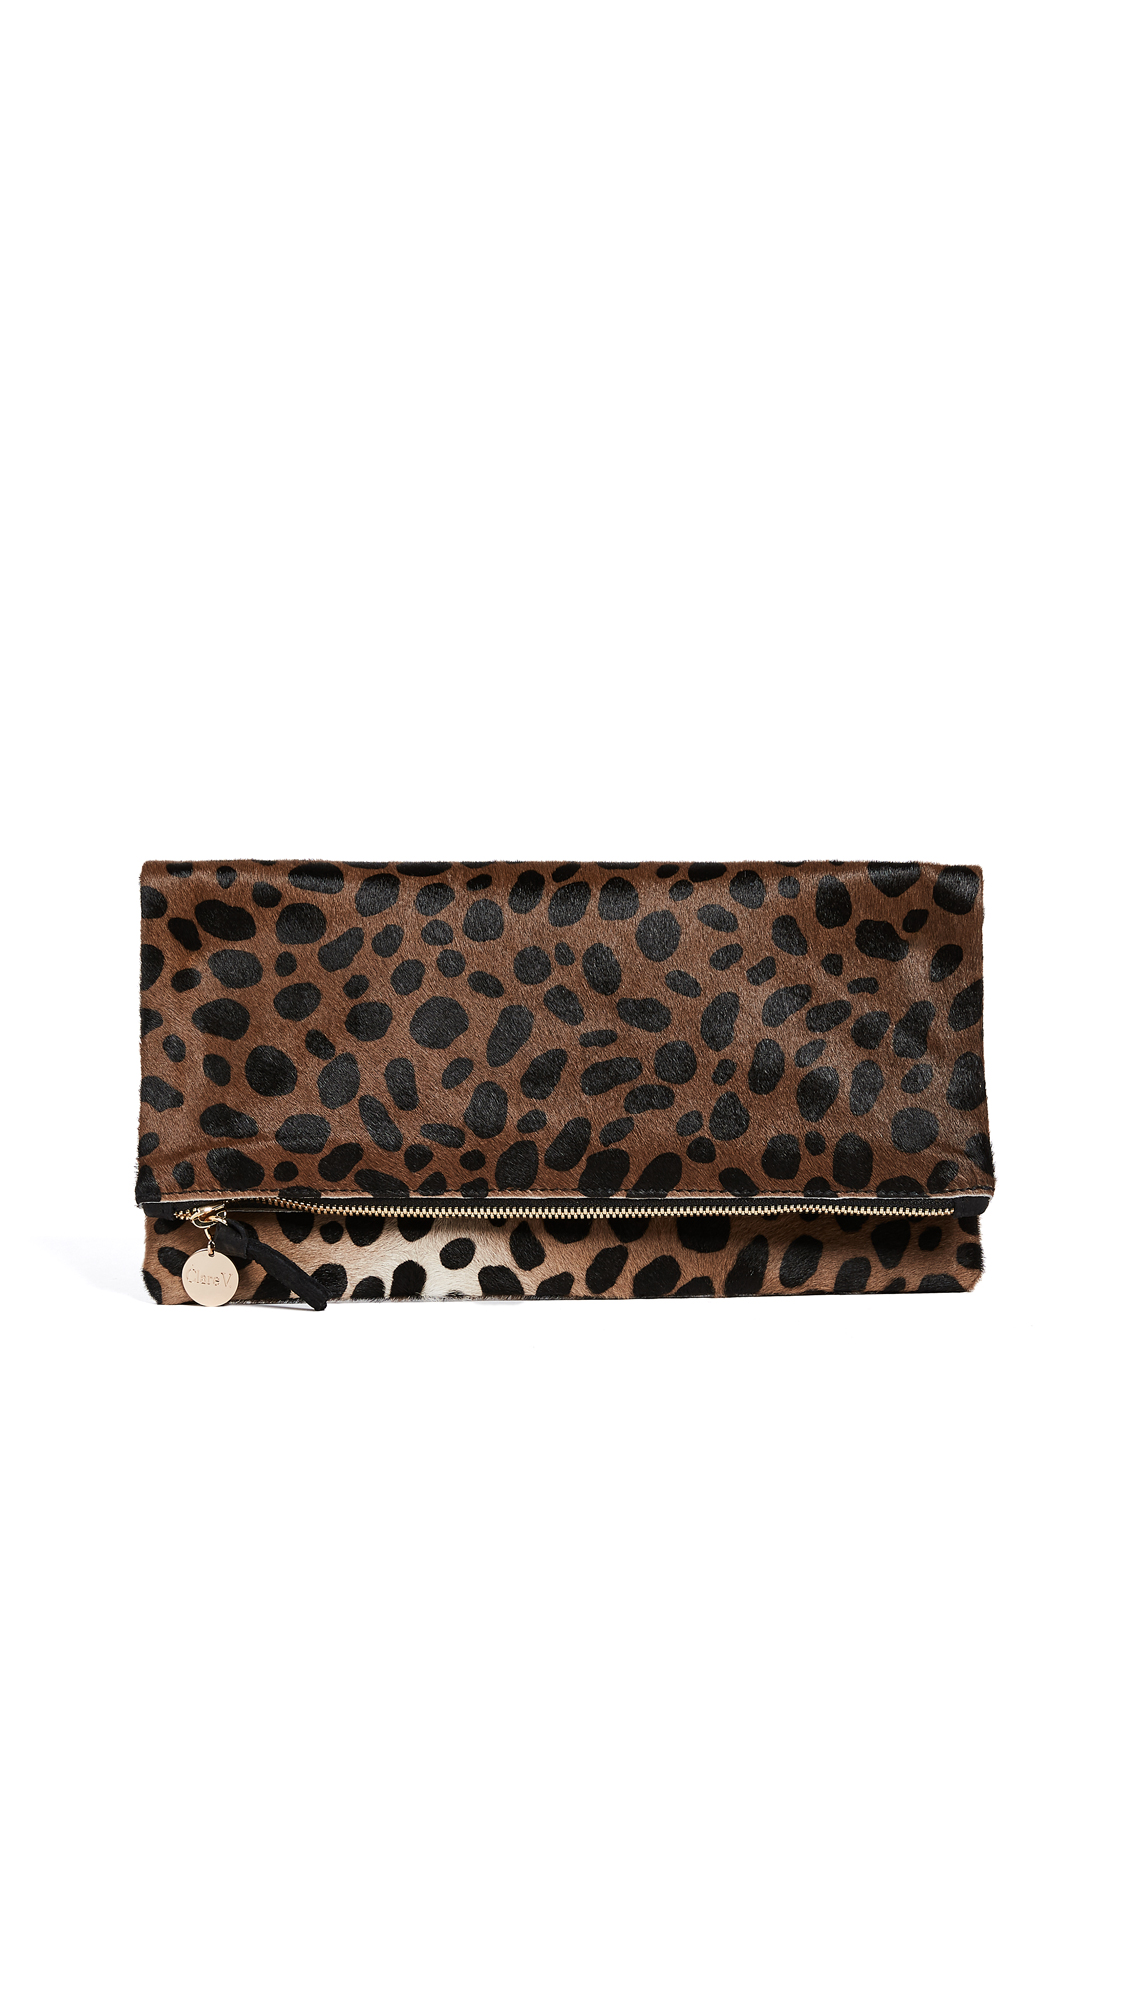 Clare V. Supreme Haircalf Fold Over Clutch - Leopard